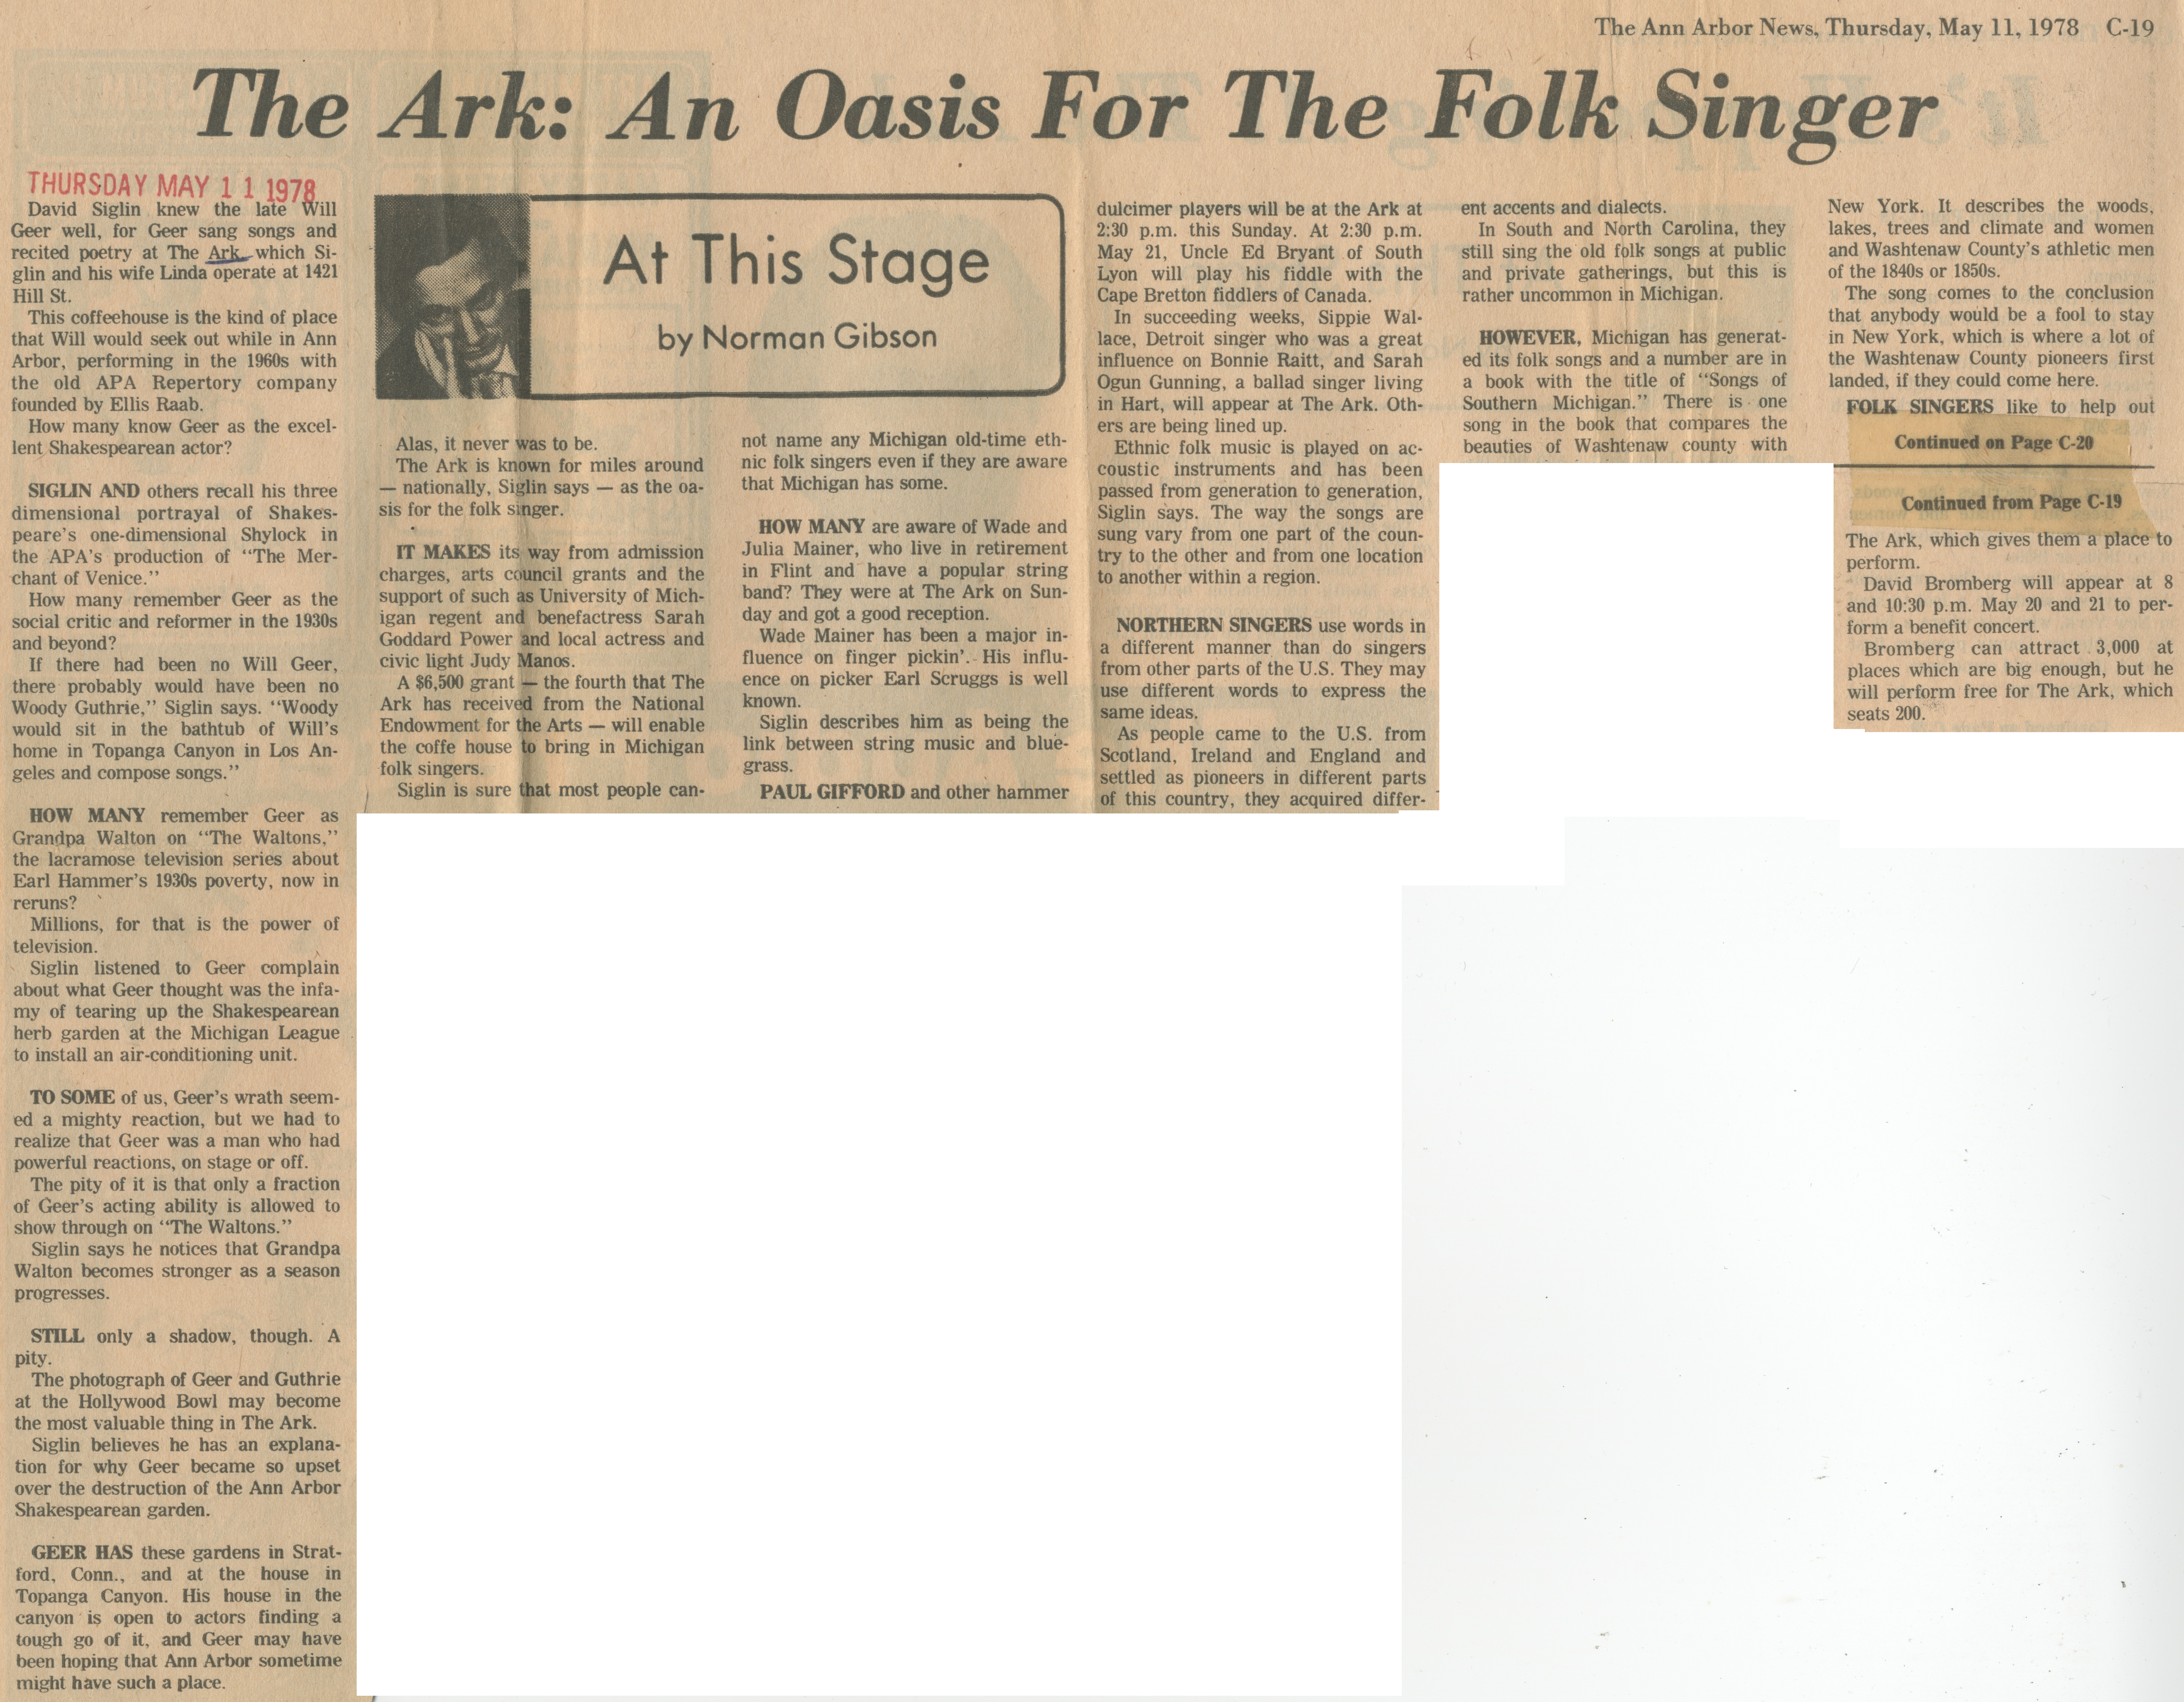 The Ark: An Oasis For The Folk Singer image